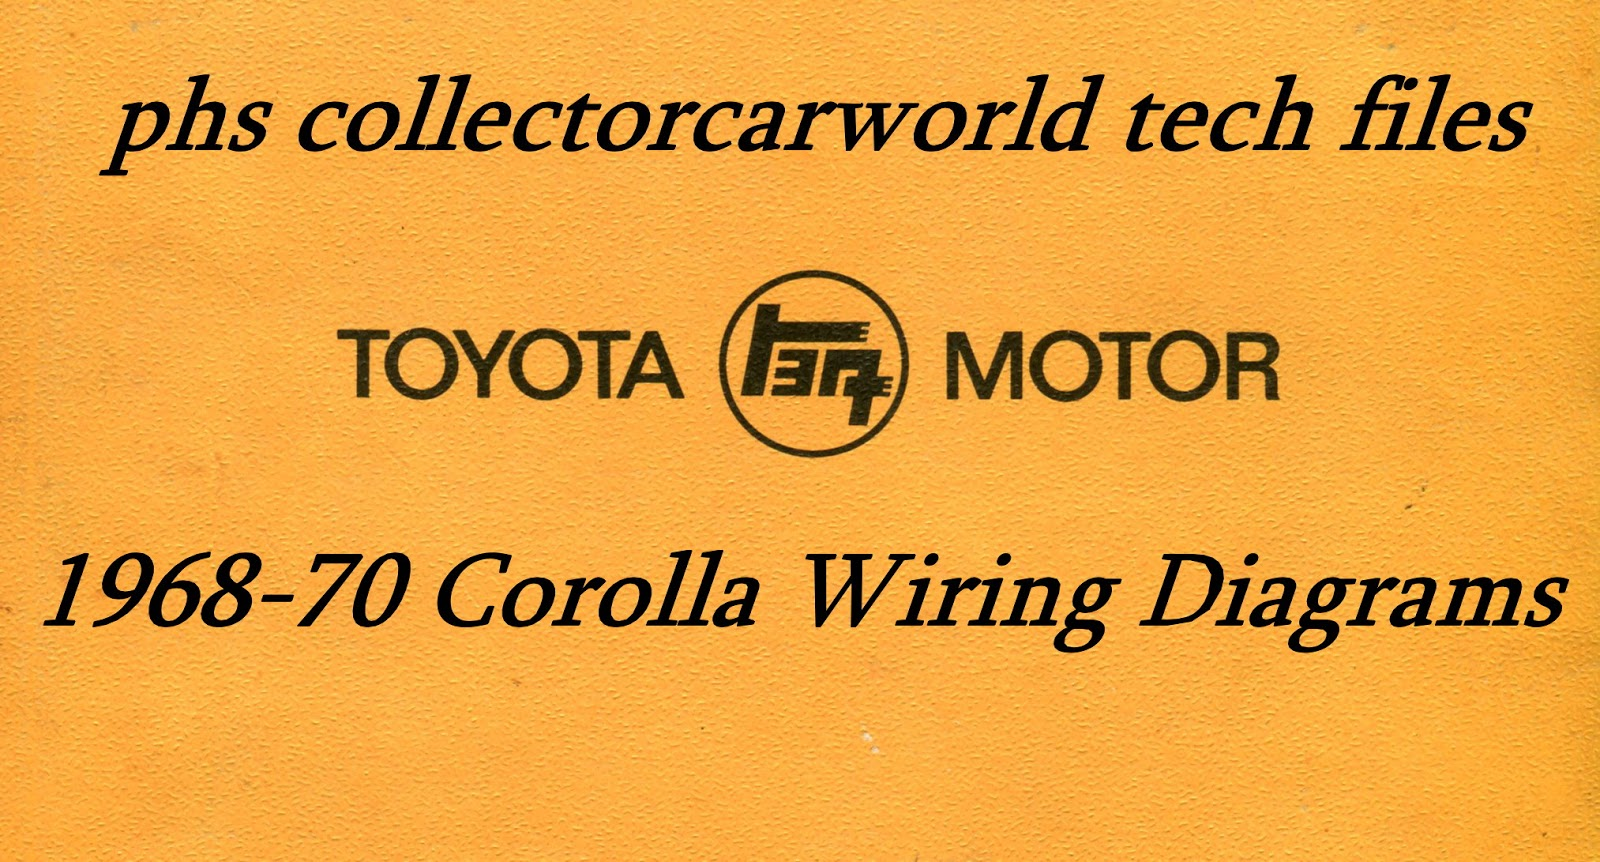 Toyota ke wiring diagram wiring diagrams tech files series 1968 1970 toyota corolla ke te series wiring 2007 toyota tacoma wiring swarovskicordoba Image collections